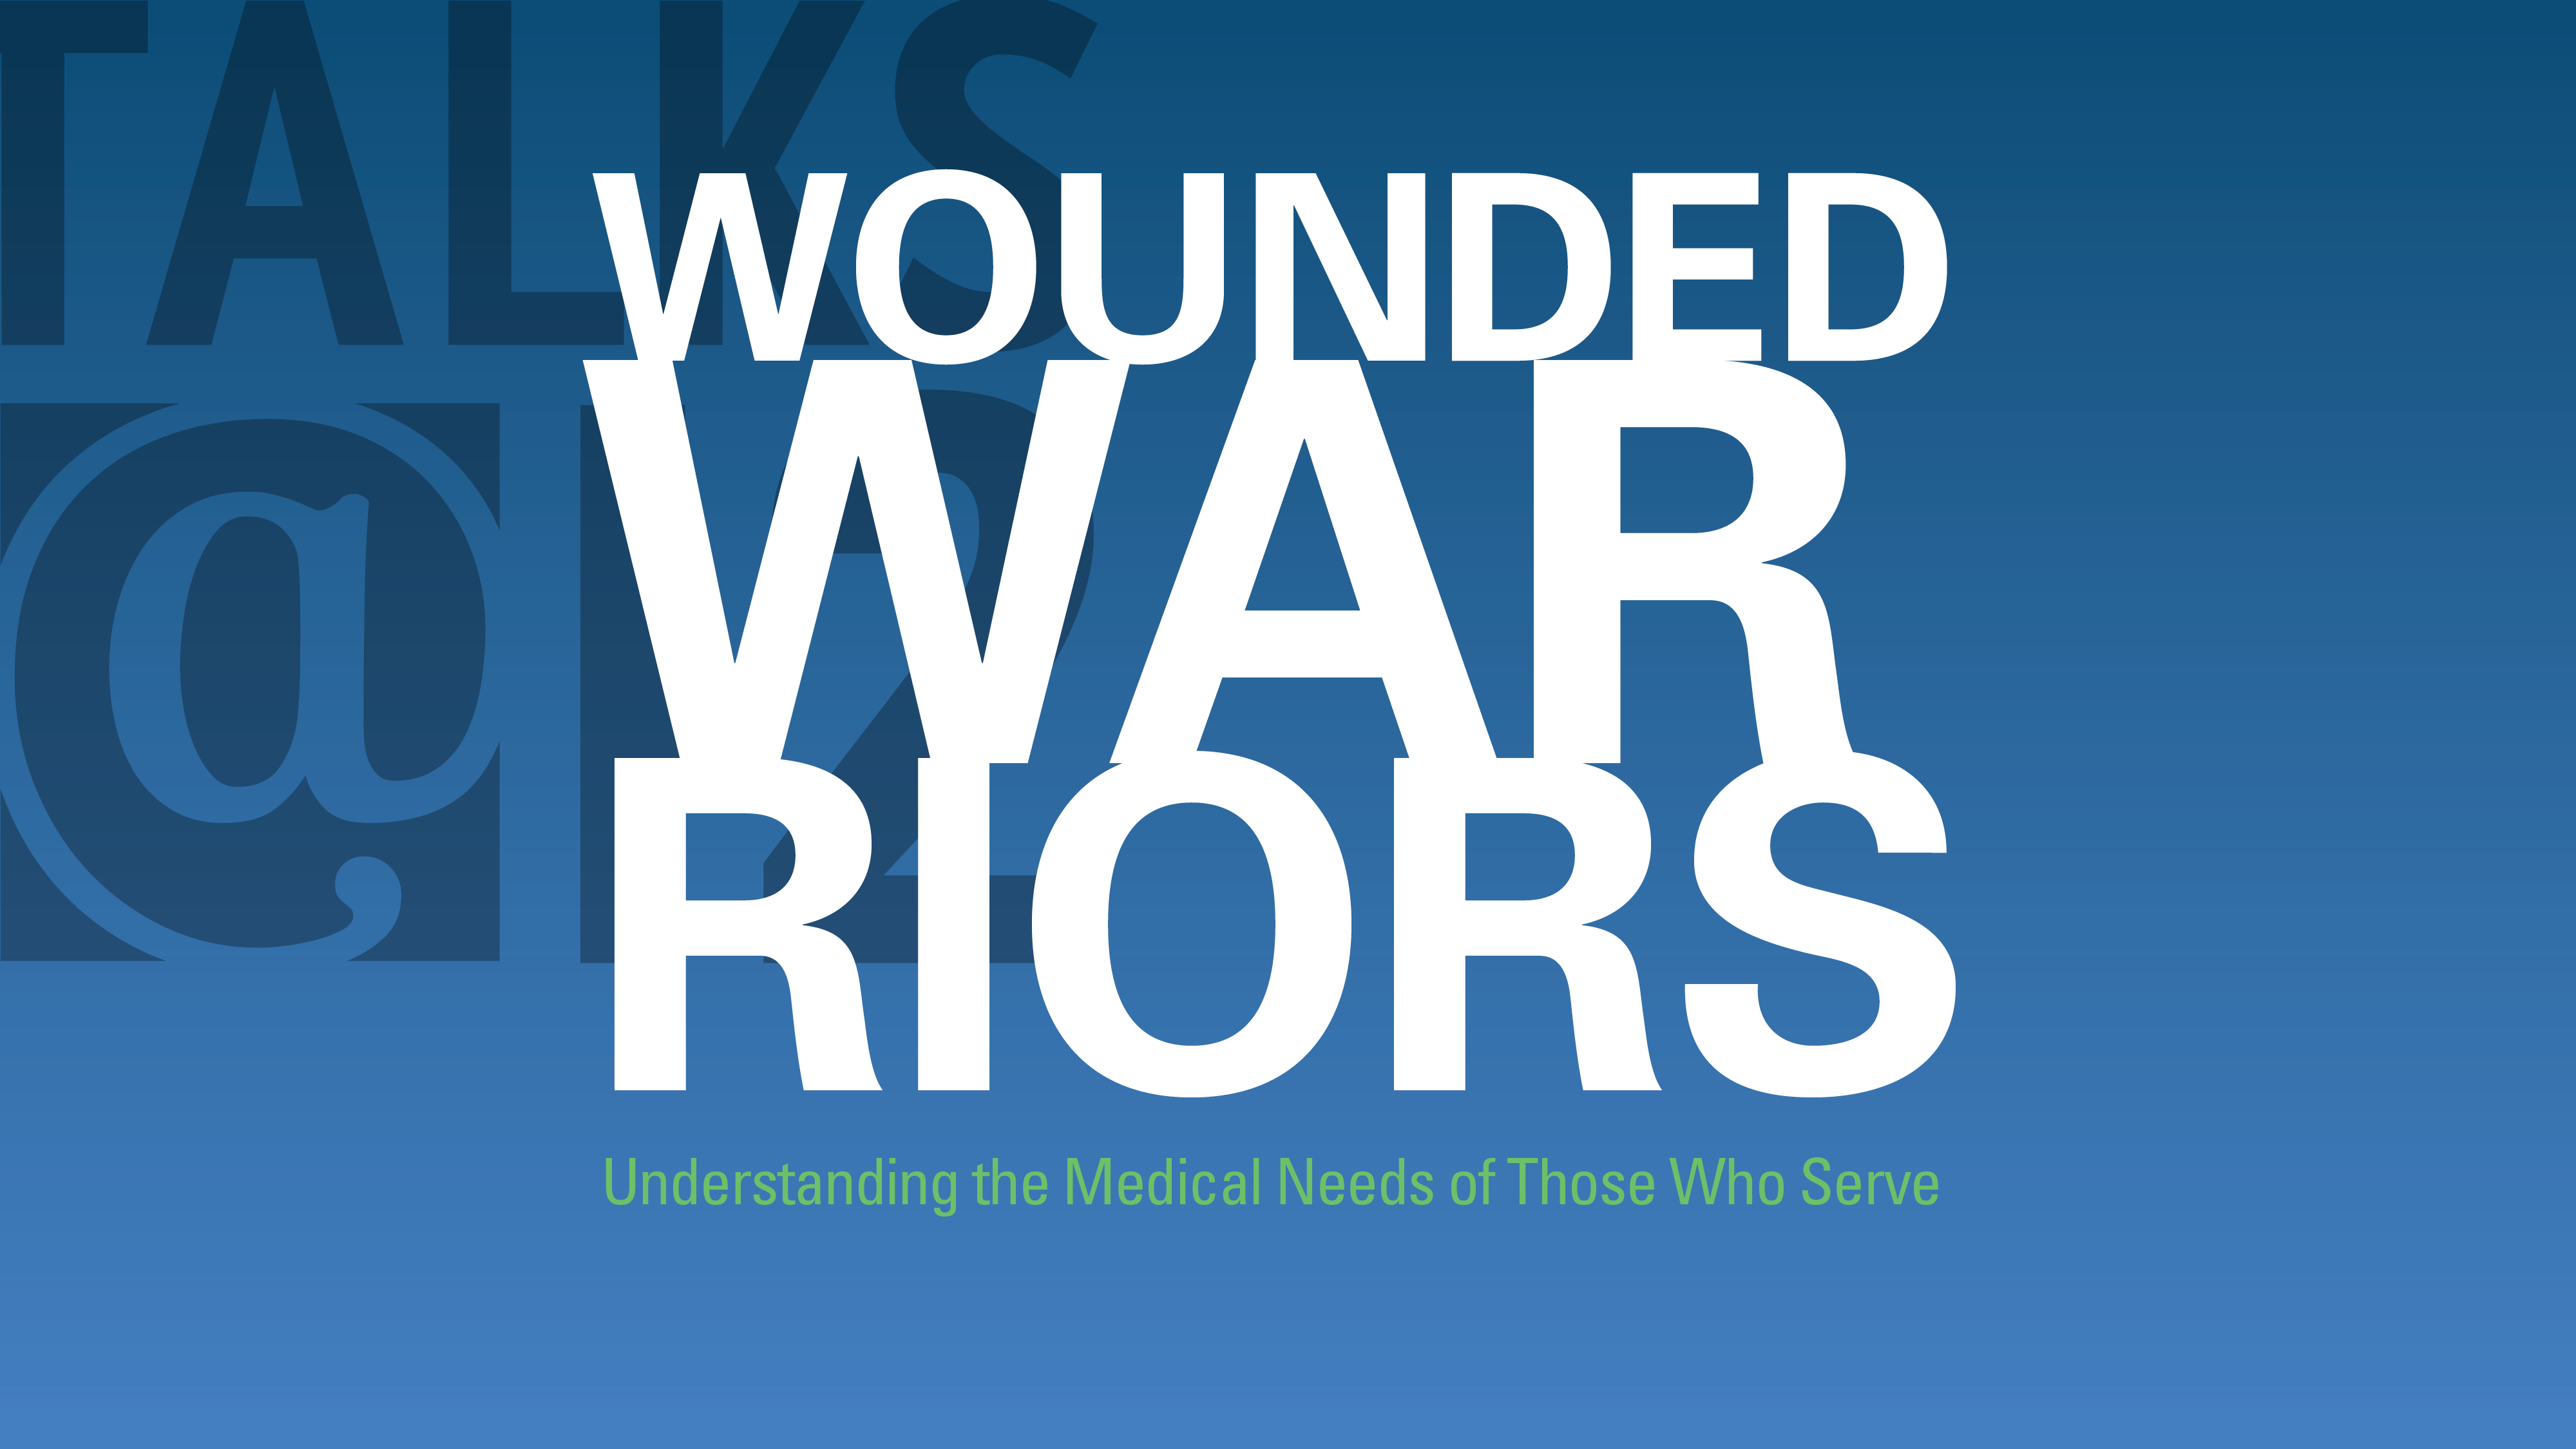 Wounded Warriors: Understanding the medical needs of those who serve